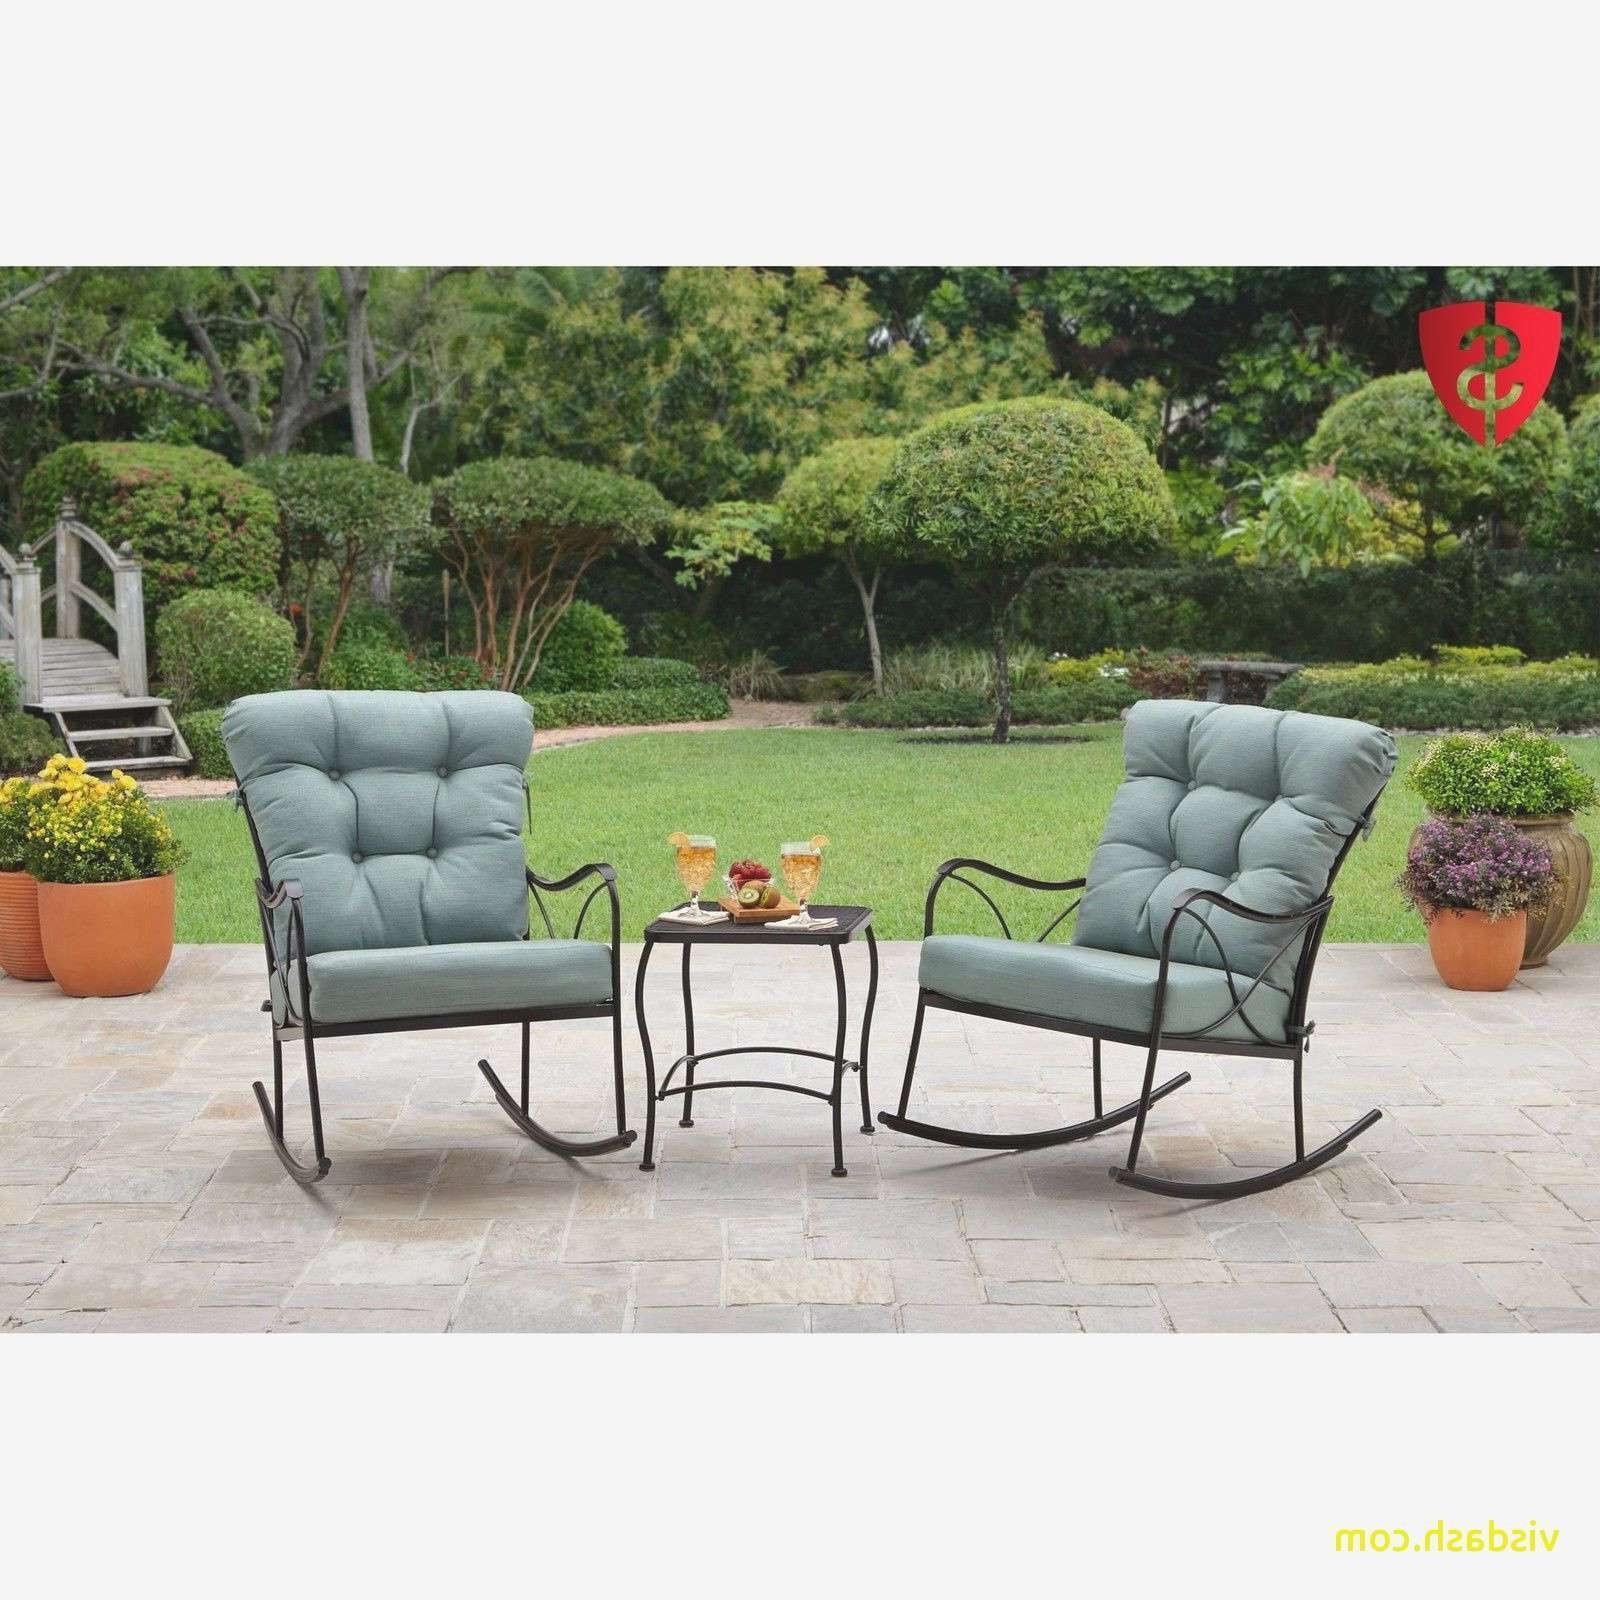 Widely Used 30 Fresh Patio Conversation Sets On Sale Design – Jsmorganicsfarm Within Nfm Patio Conversation Sets (View 14 of 15)